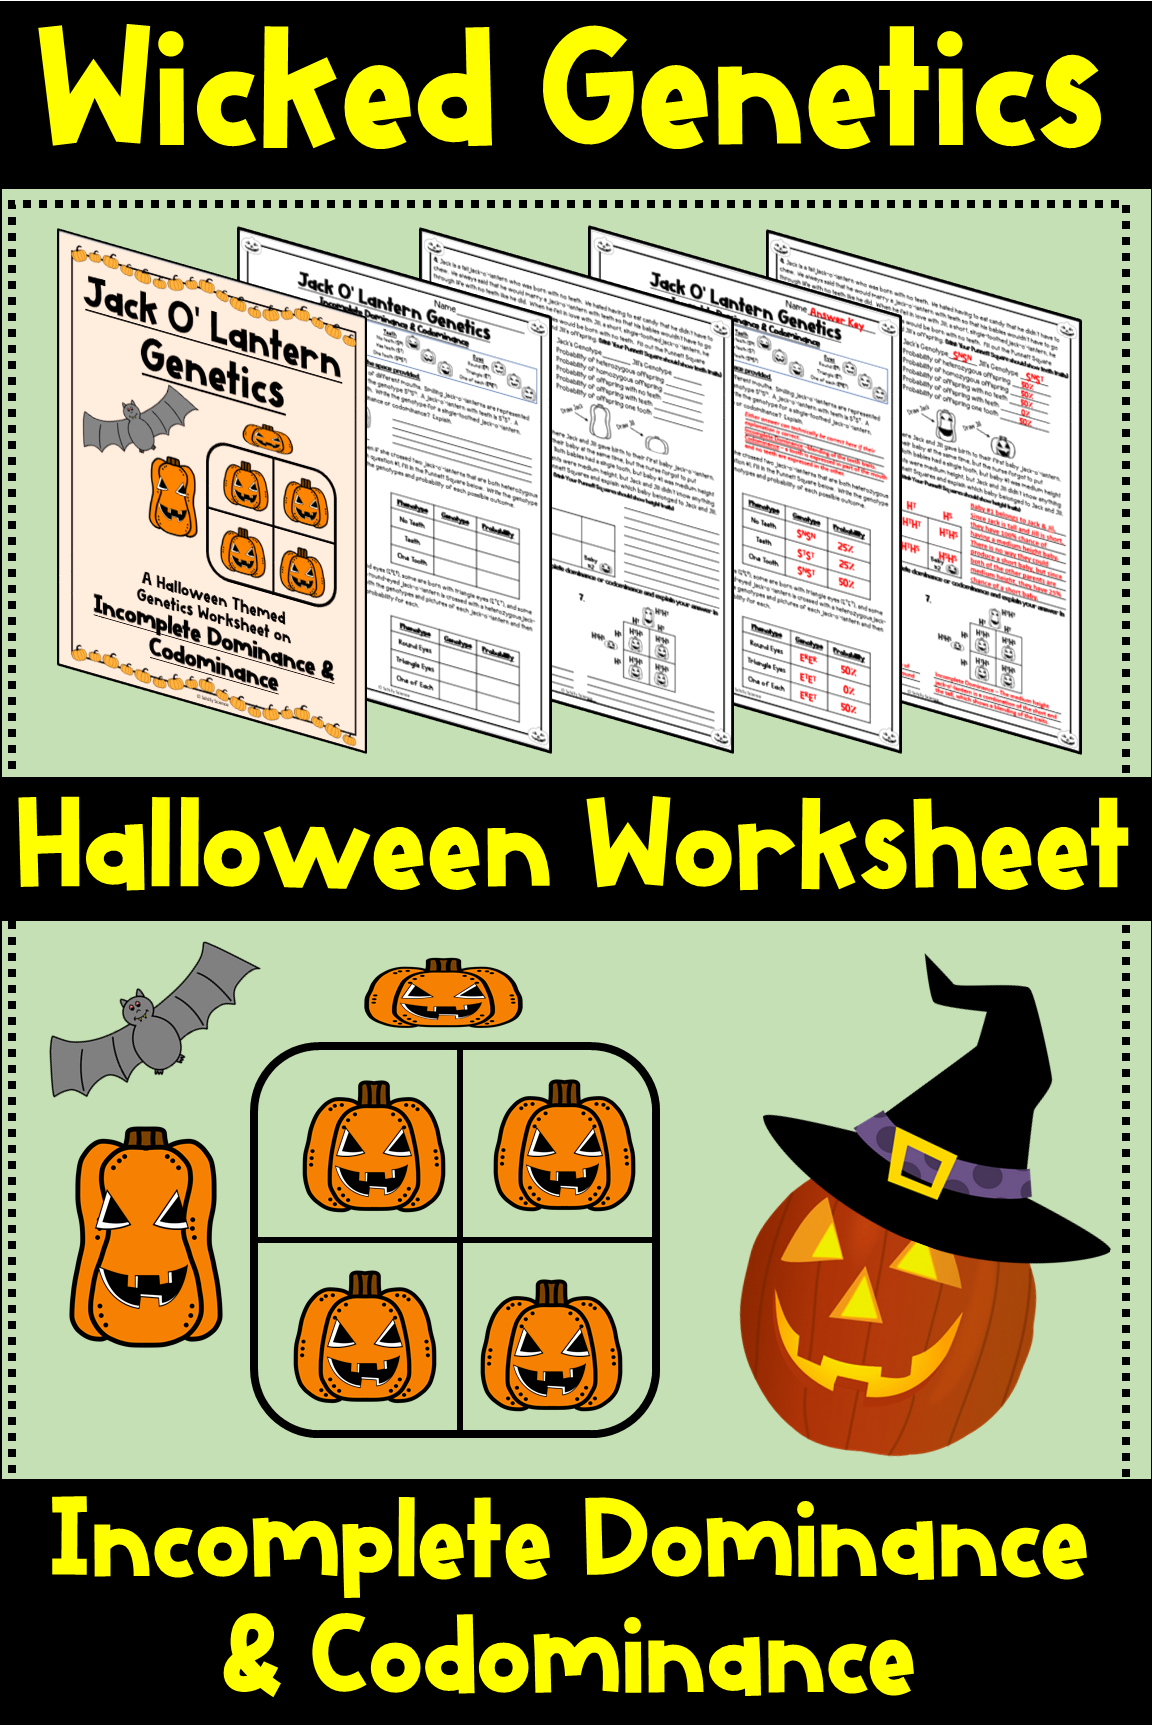 Halloween Worksheet dominance